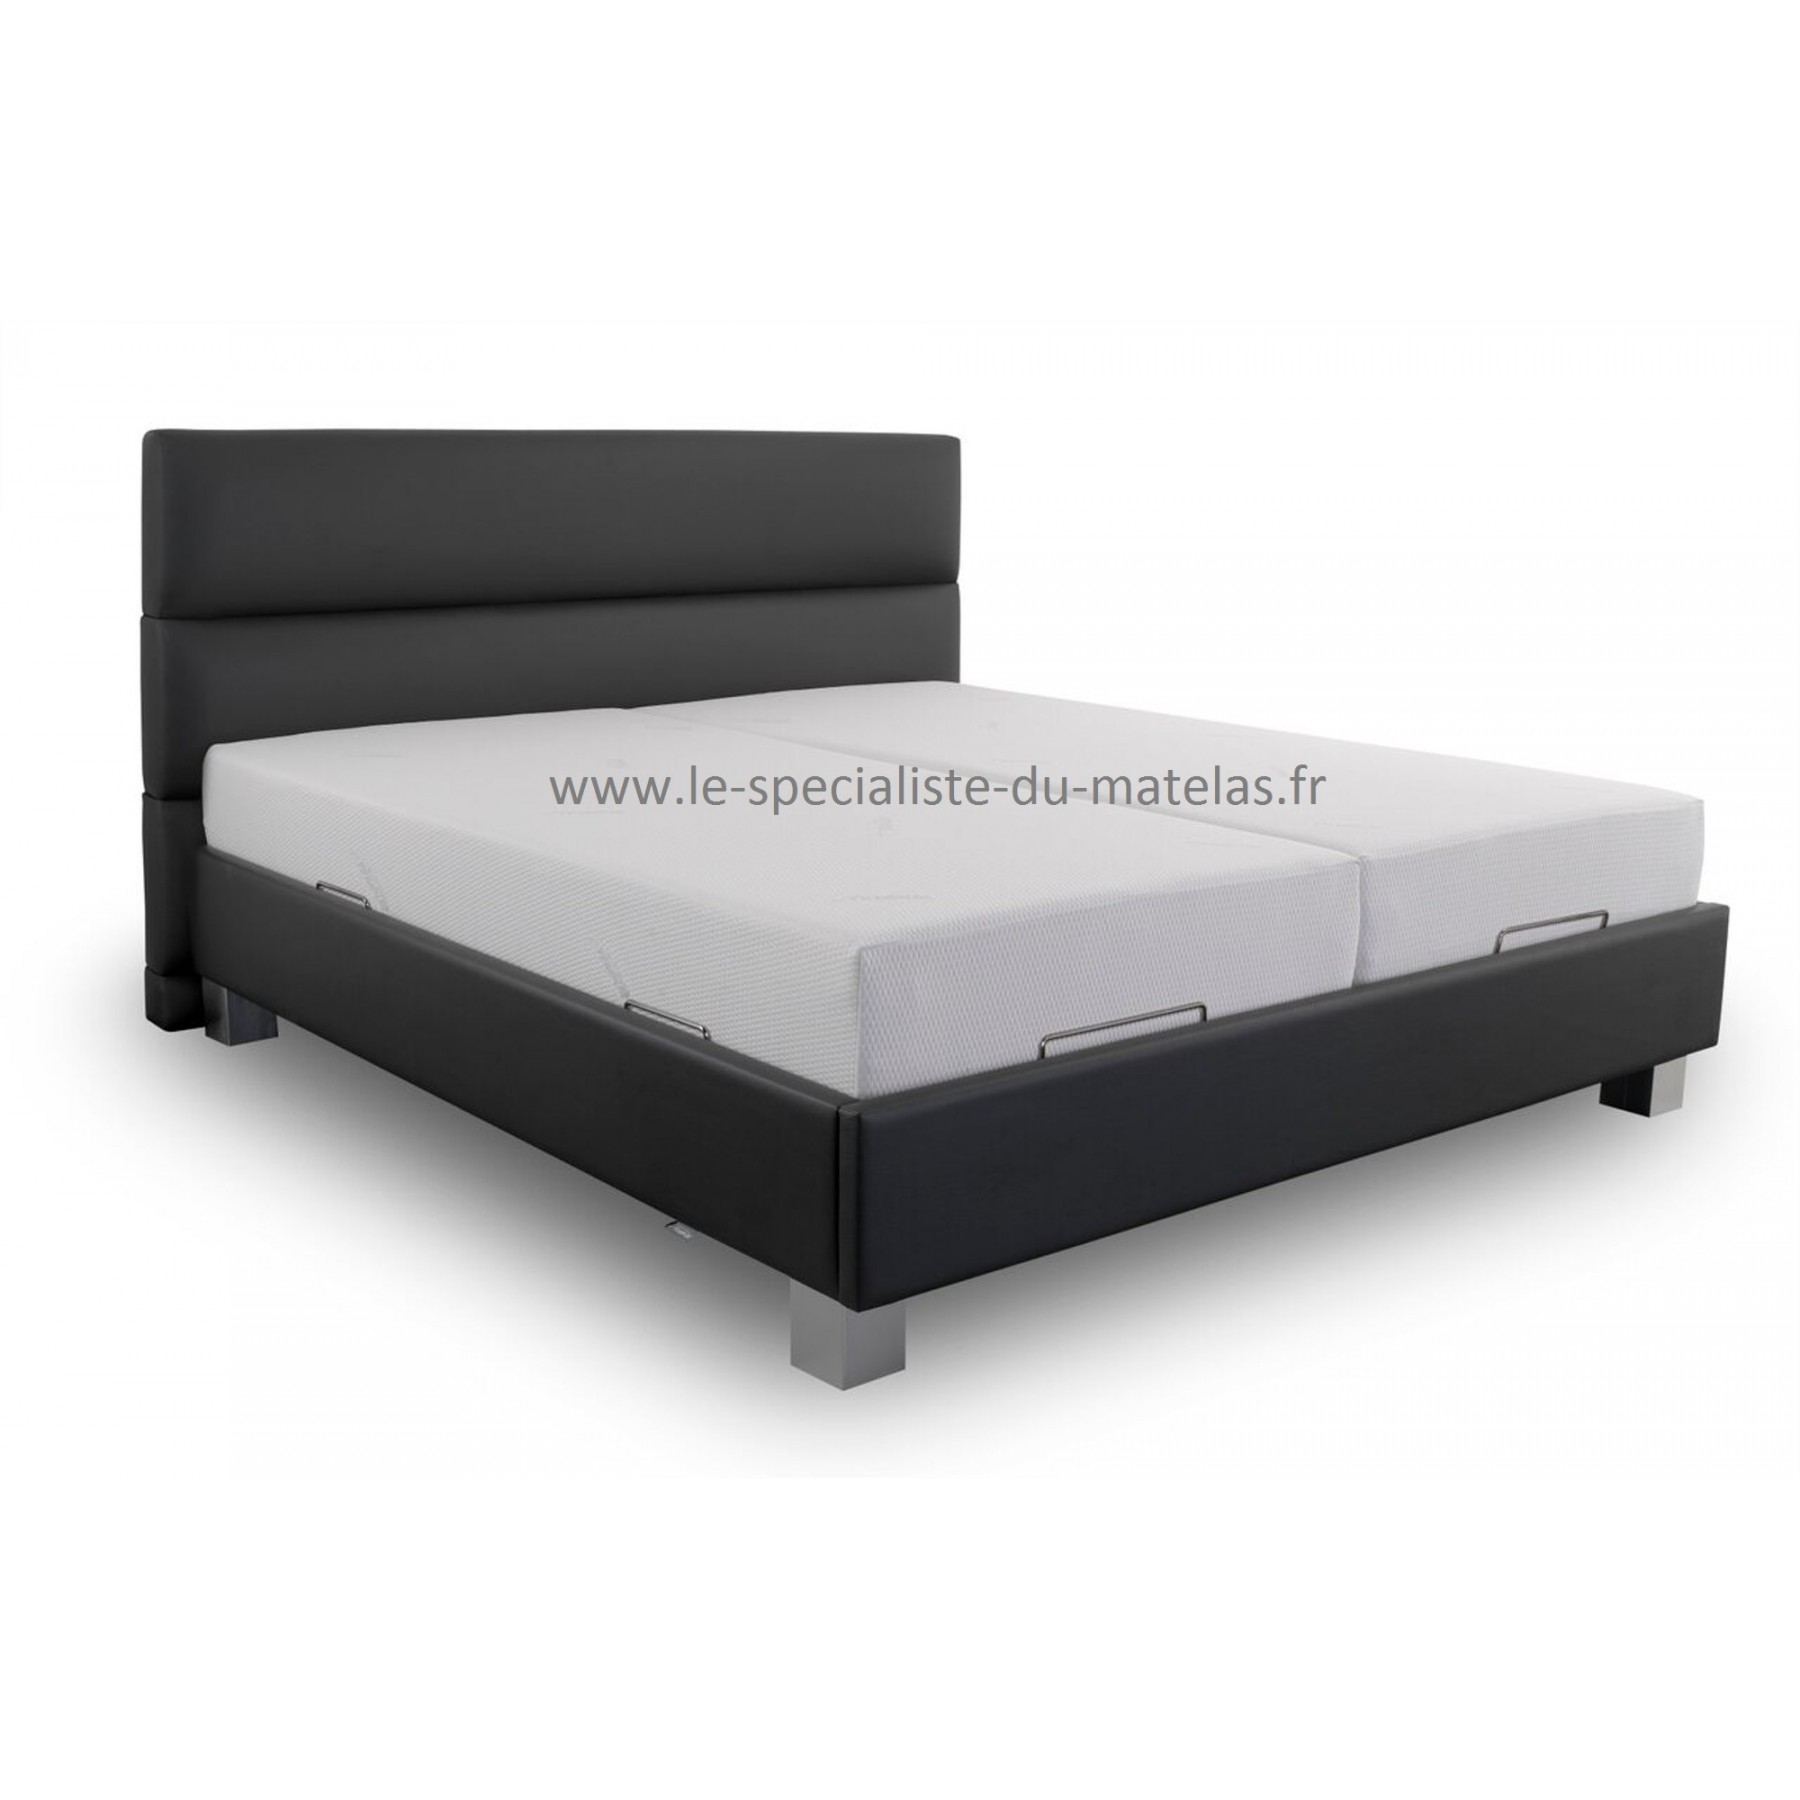 lit tempur lit prestige complet au sp cialiste du matelas. Black Bedroom Furniture Sets. Home Design Ideas